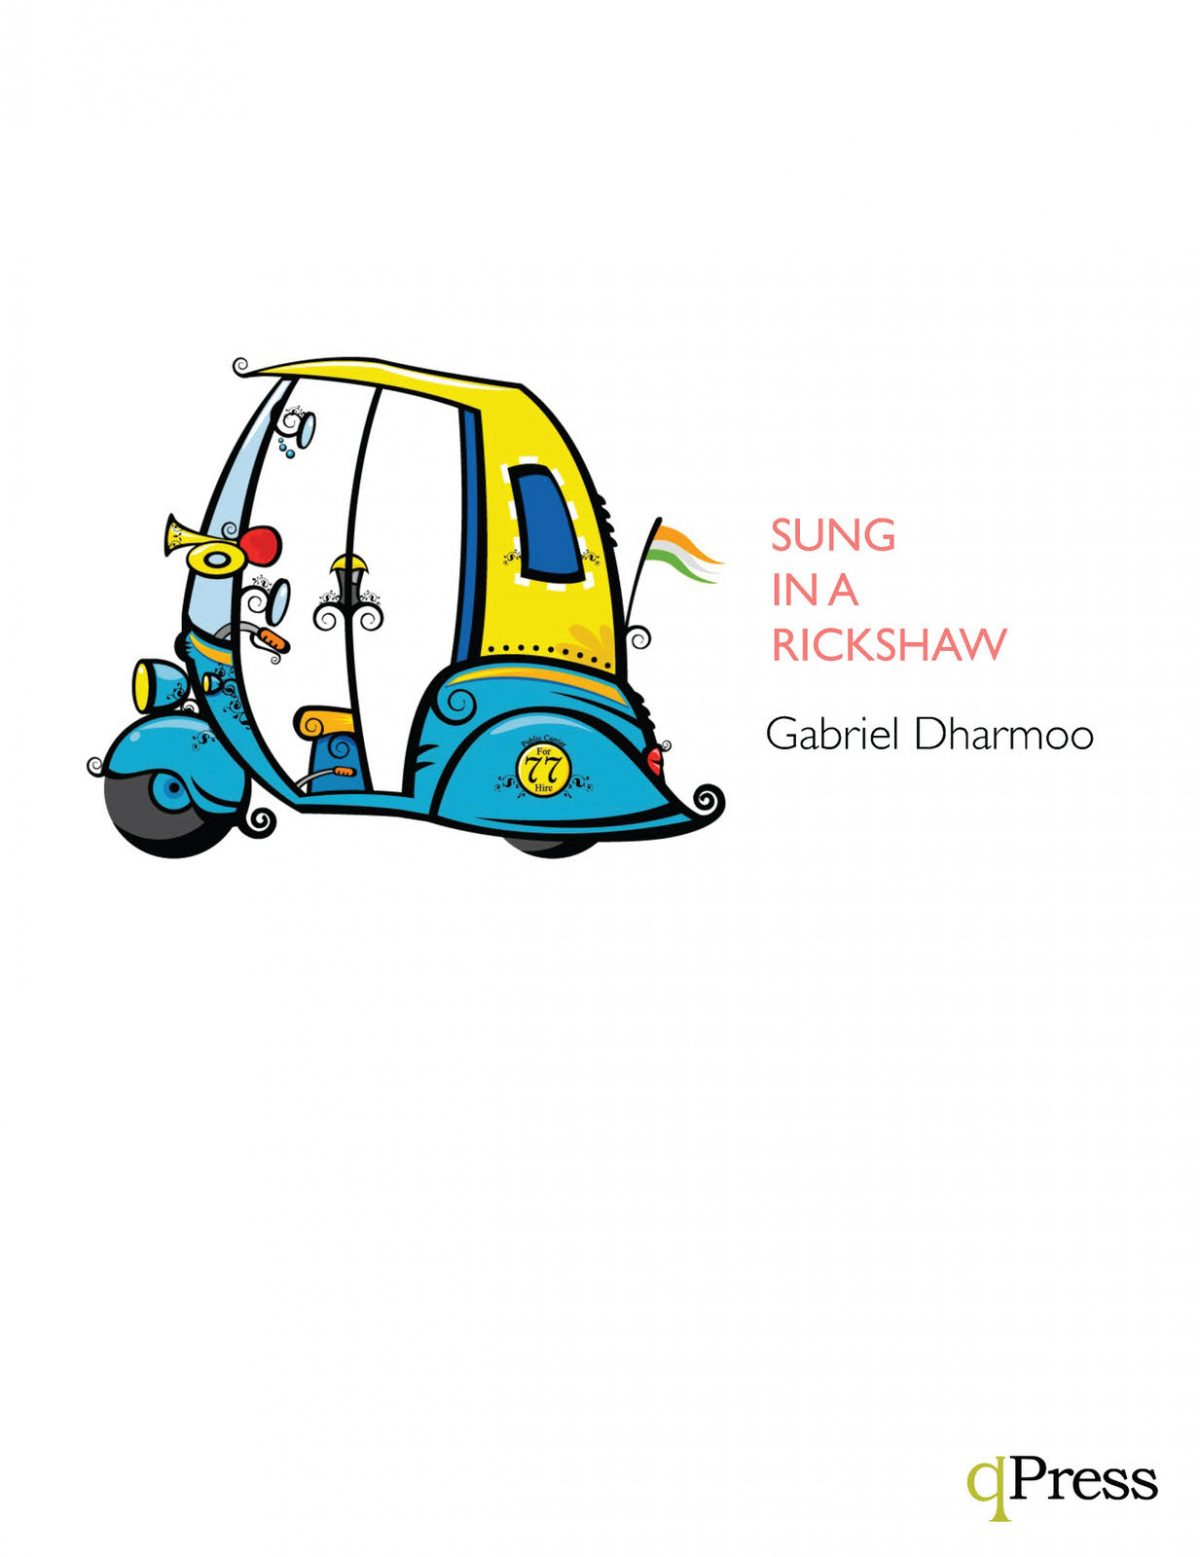 Dharmoo, Sung in a Rickshaw, C Trumpet Cover Image